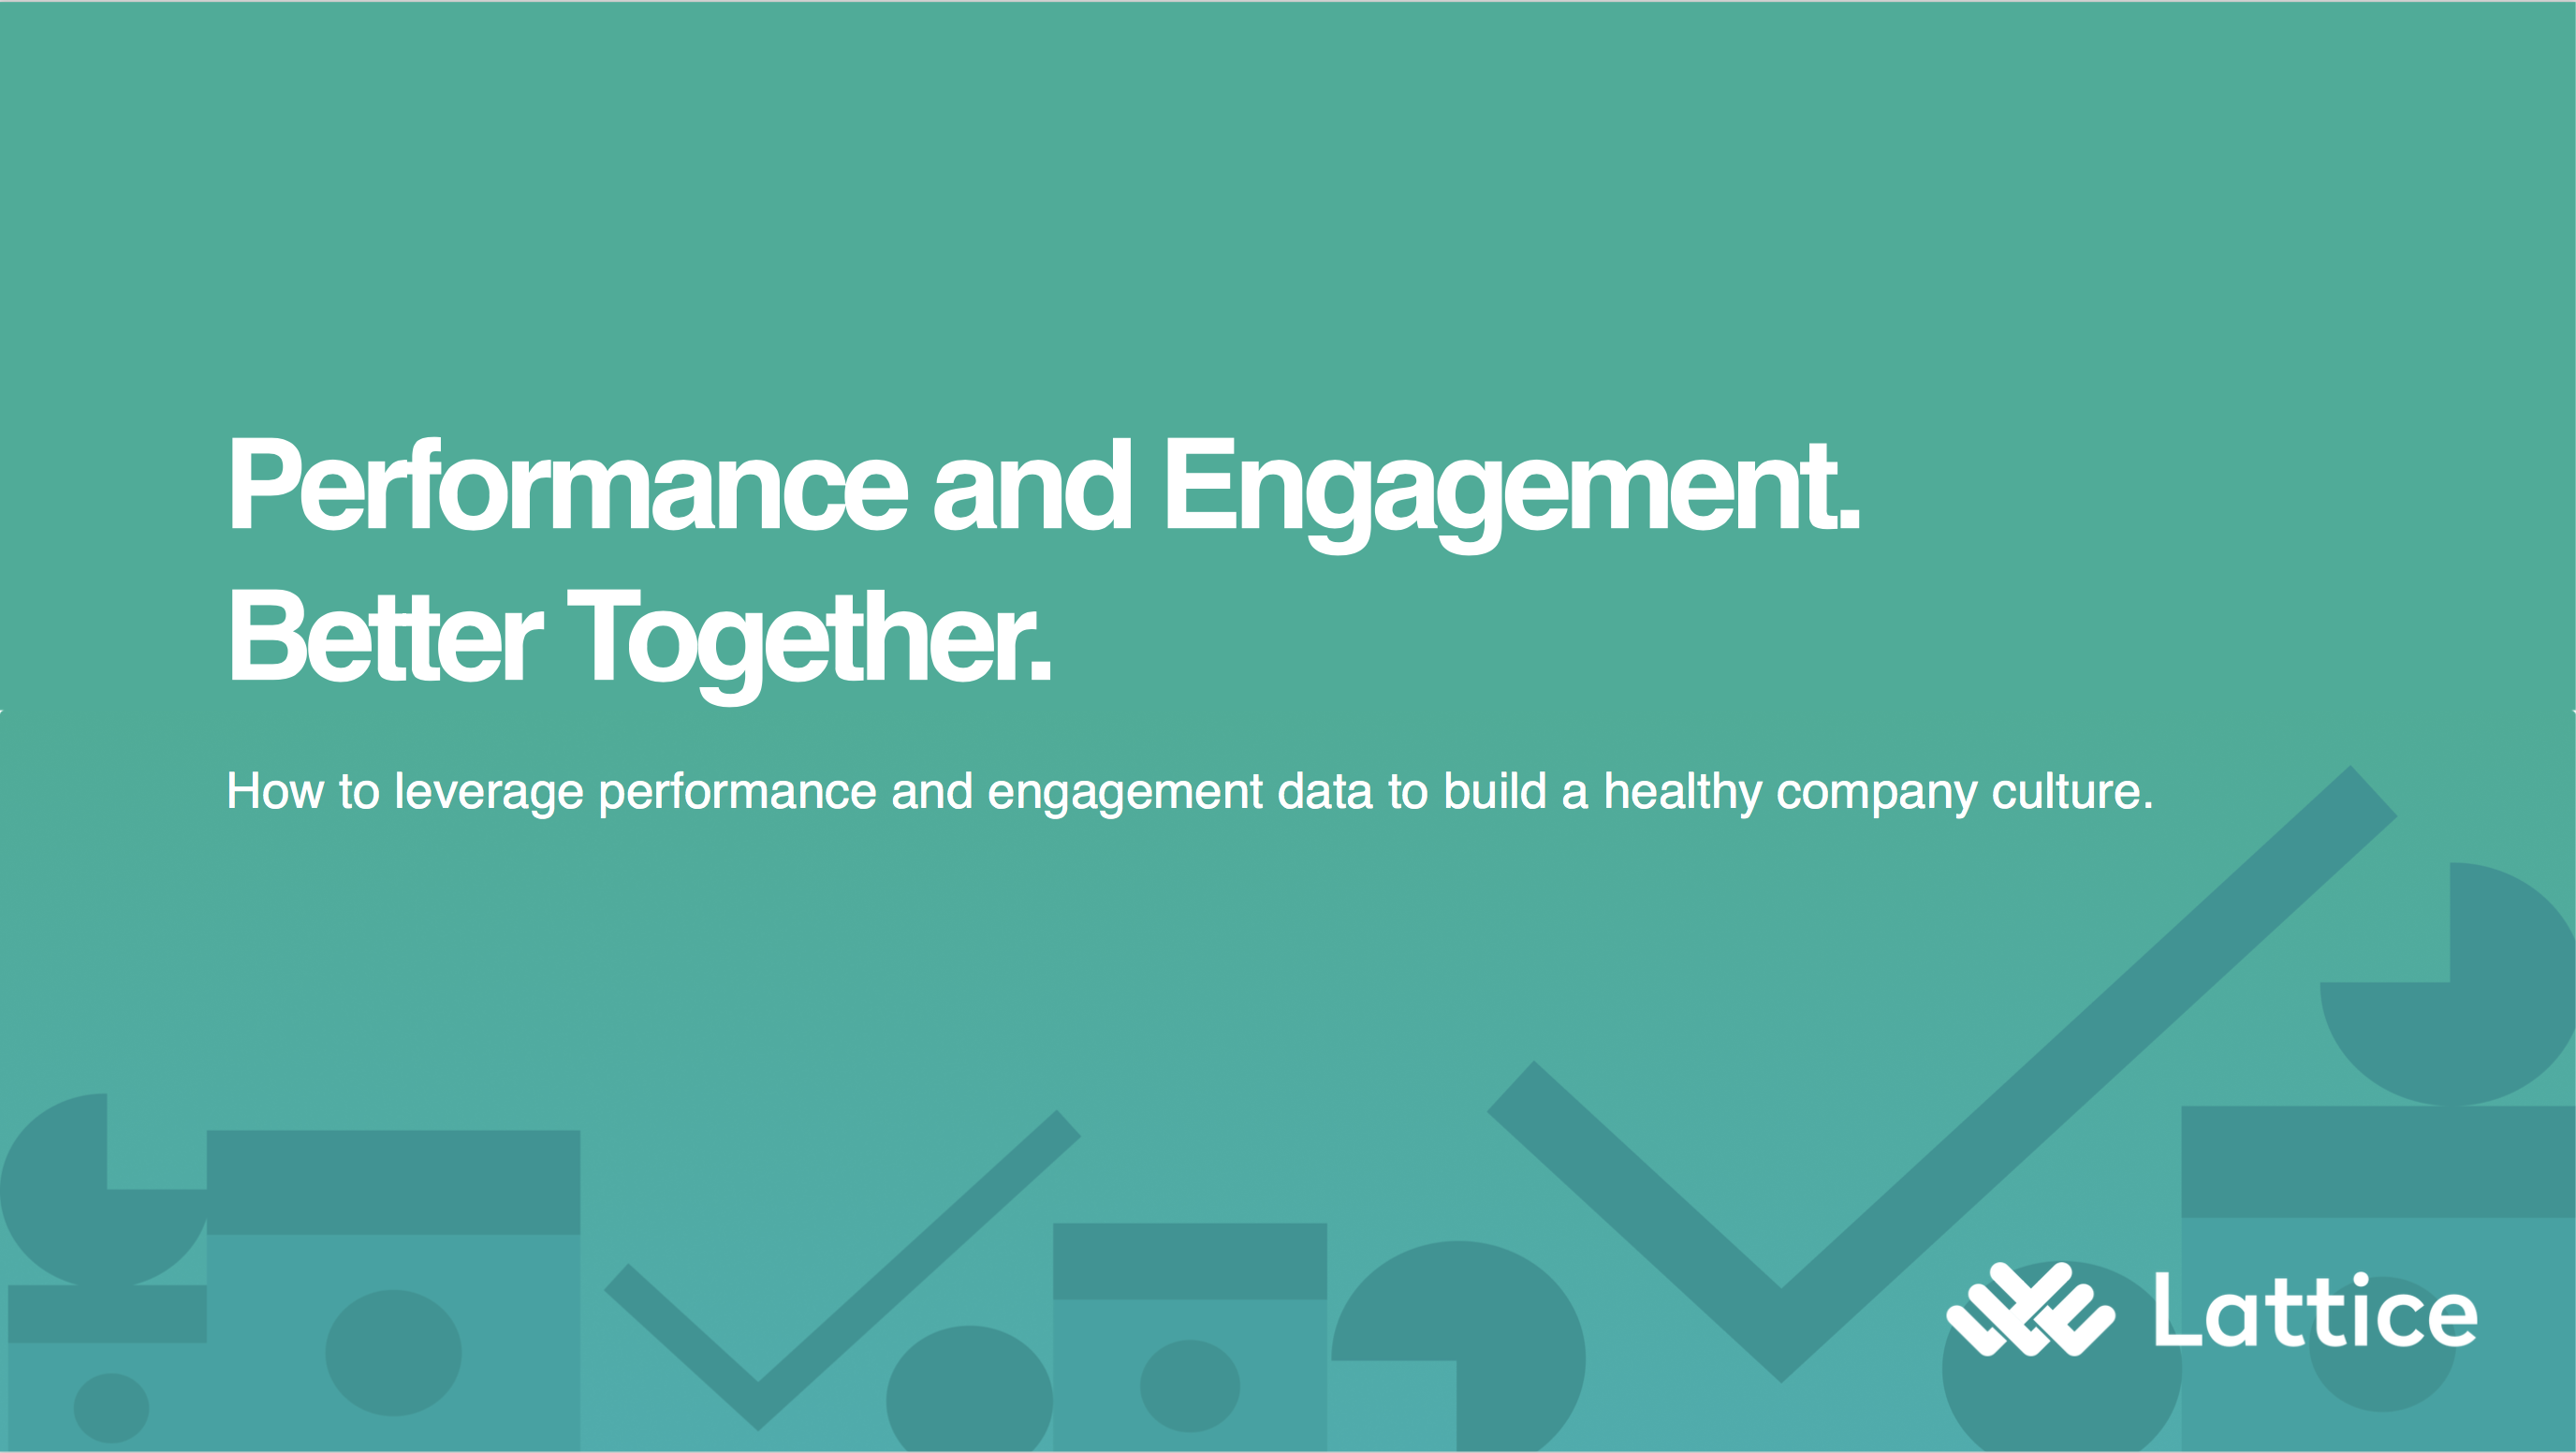 Performance and Engagement. Better Together.